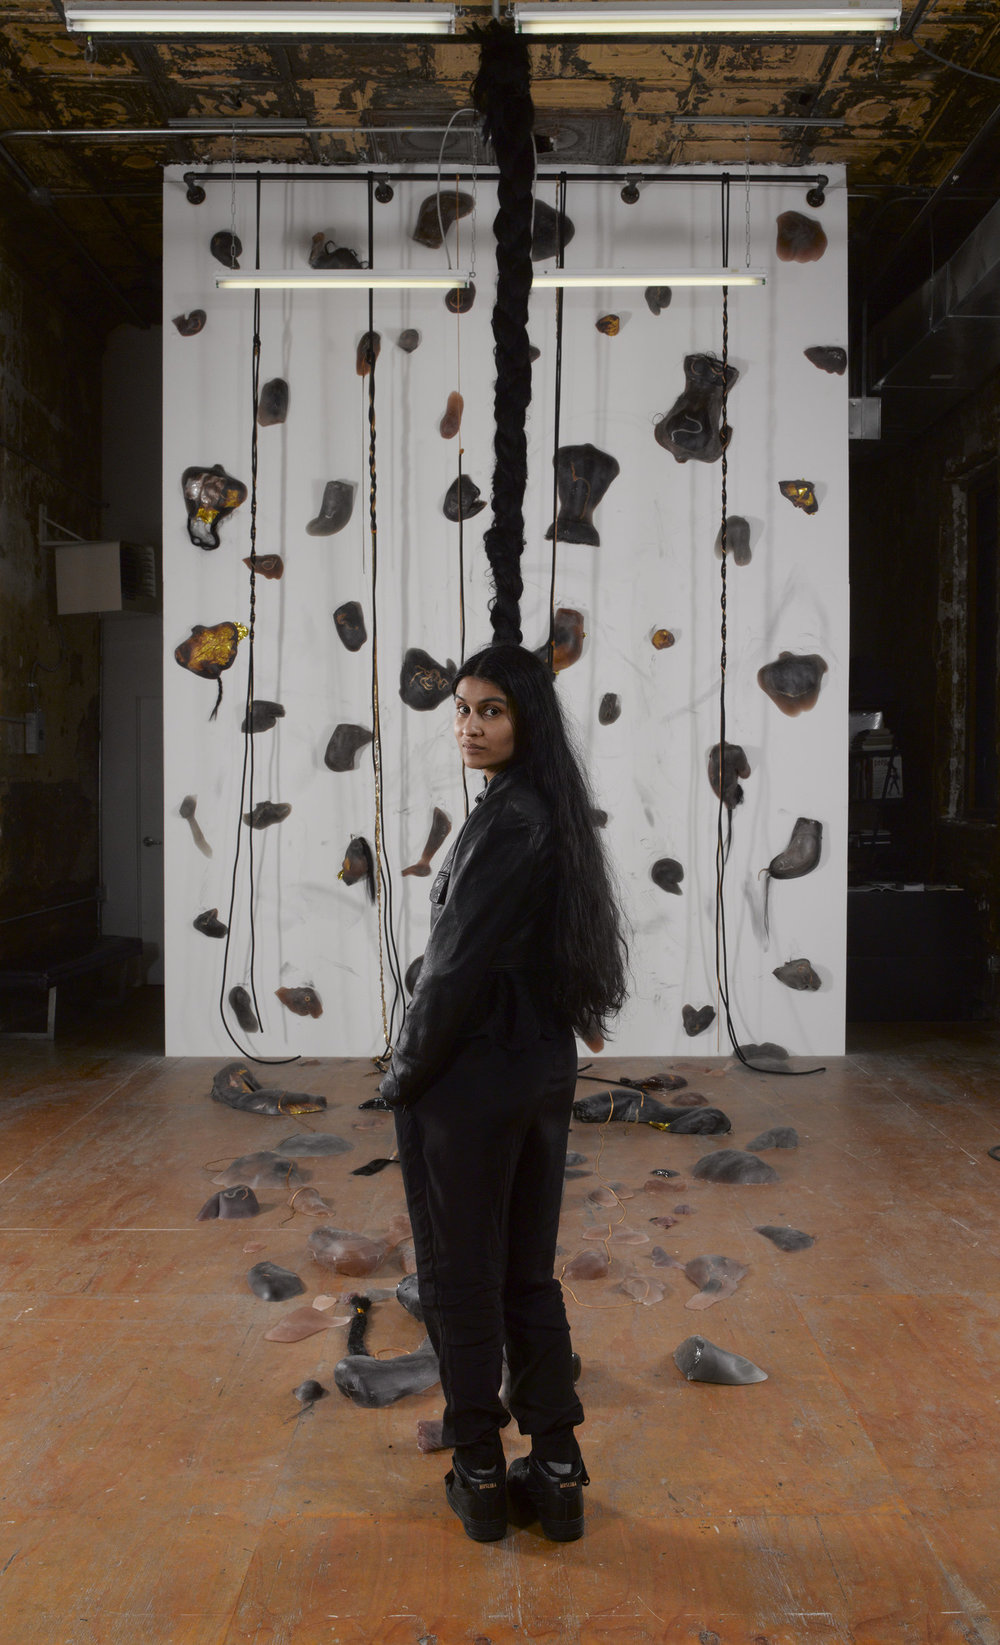 99 Holds , Indoor rock-climbing wall made from 99 unique poured dyed resin casts of the corners of the artist's body. Embedded with wearable Cuban chains, hair, and hypothermia blankets, 120 × 297 in, 2017